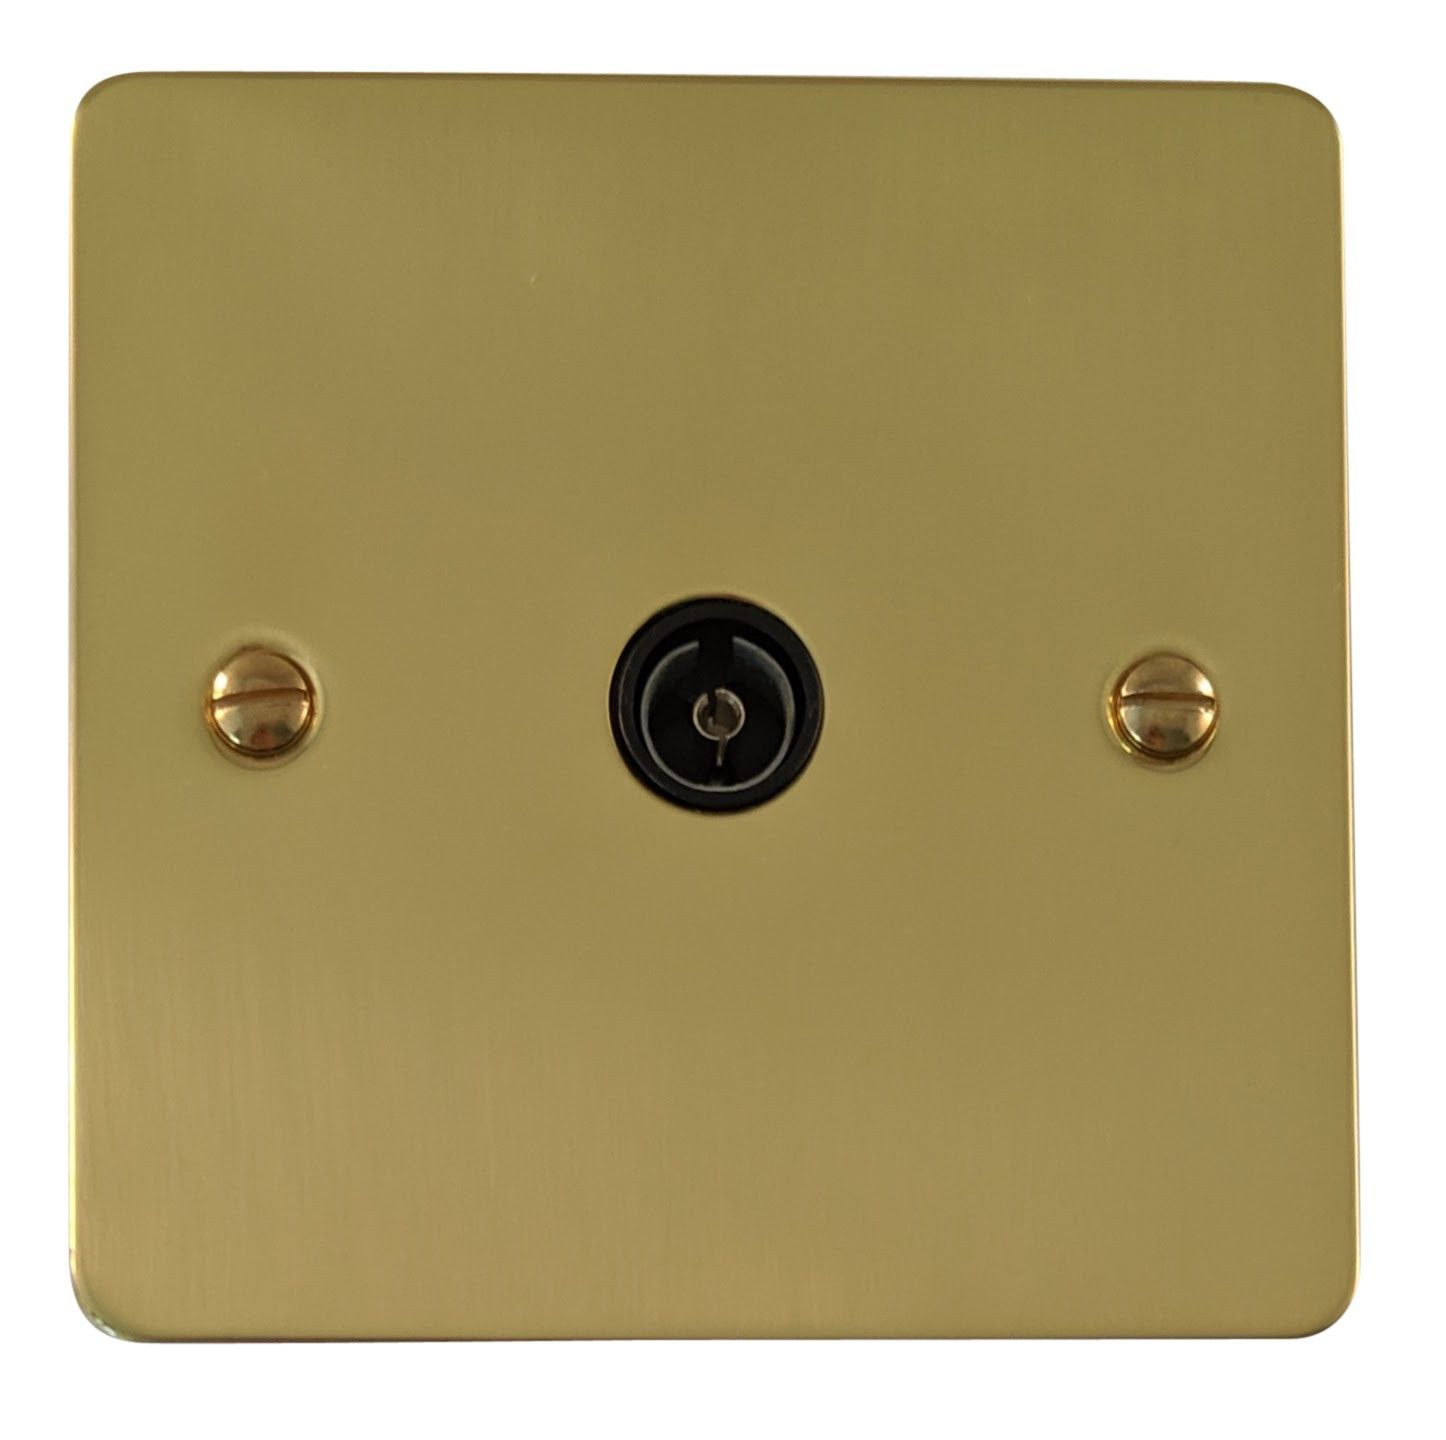 G&H FB35B Flat Plate Polished Brass 1 Gang TV Coax Socket Point